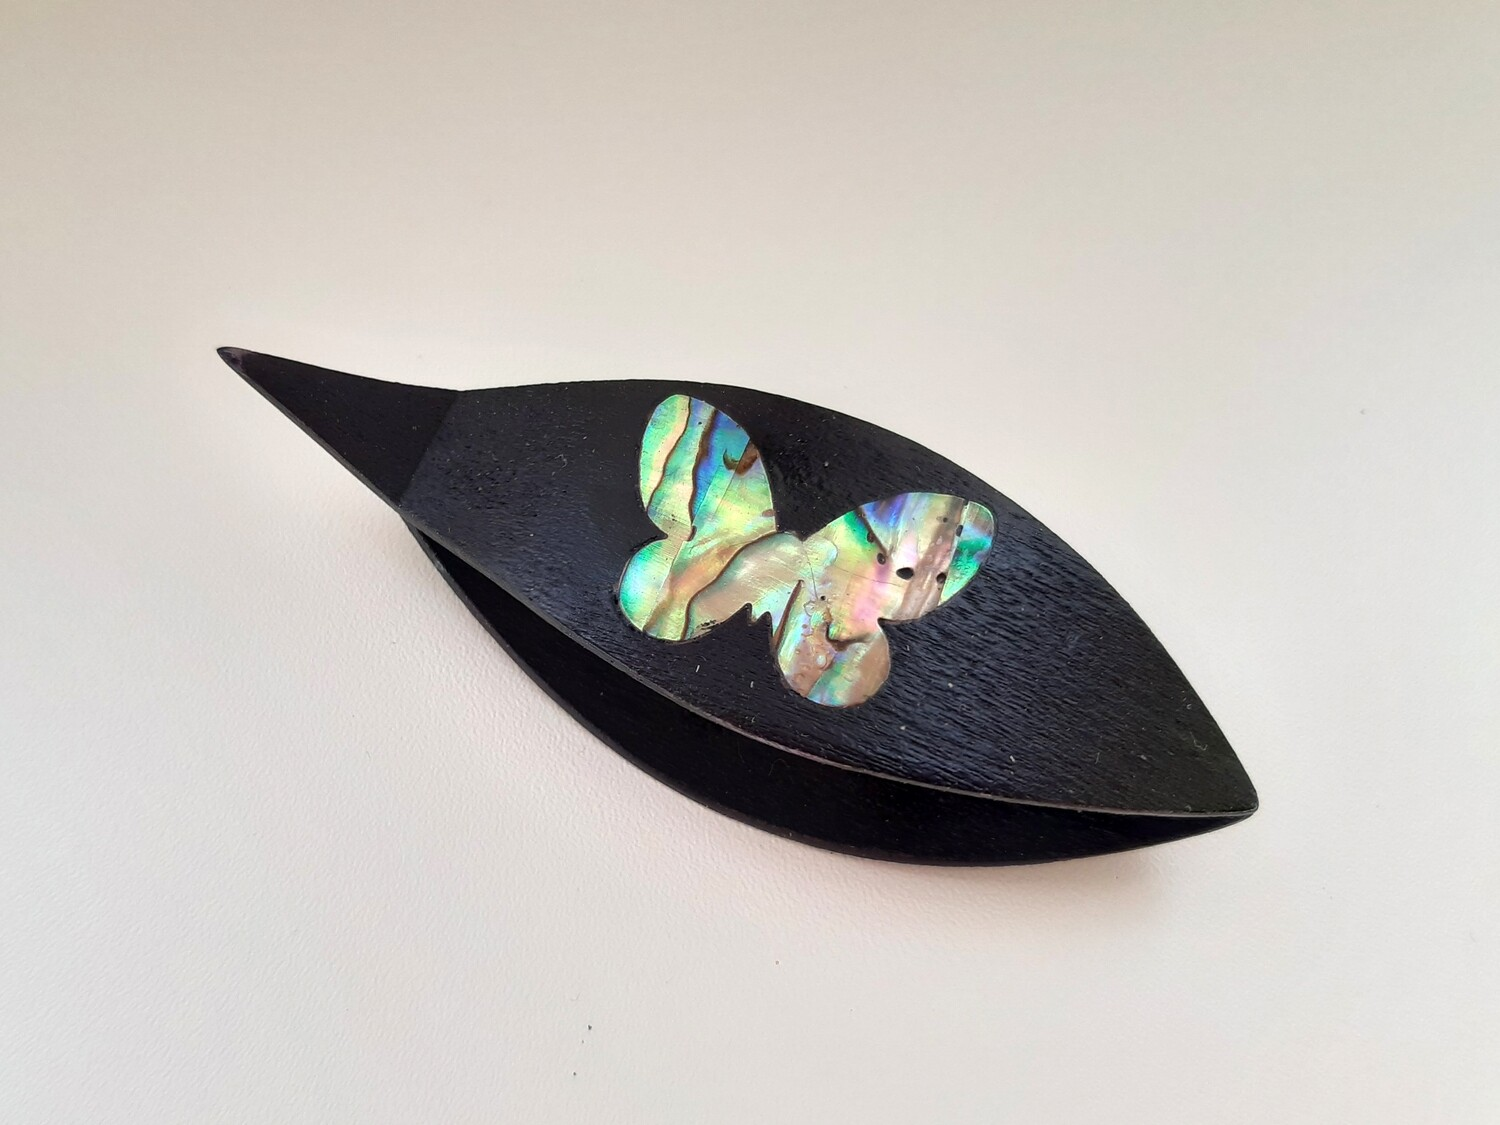 Tatting Shuttle With Pick Black Wood Mother-of-Pearl Butterfly Inlay